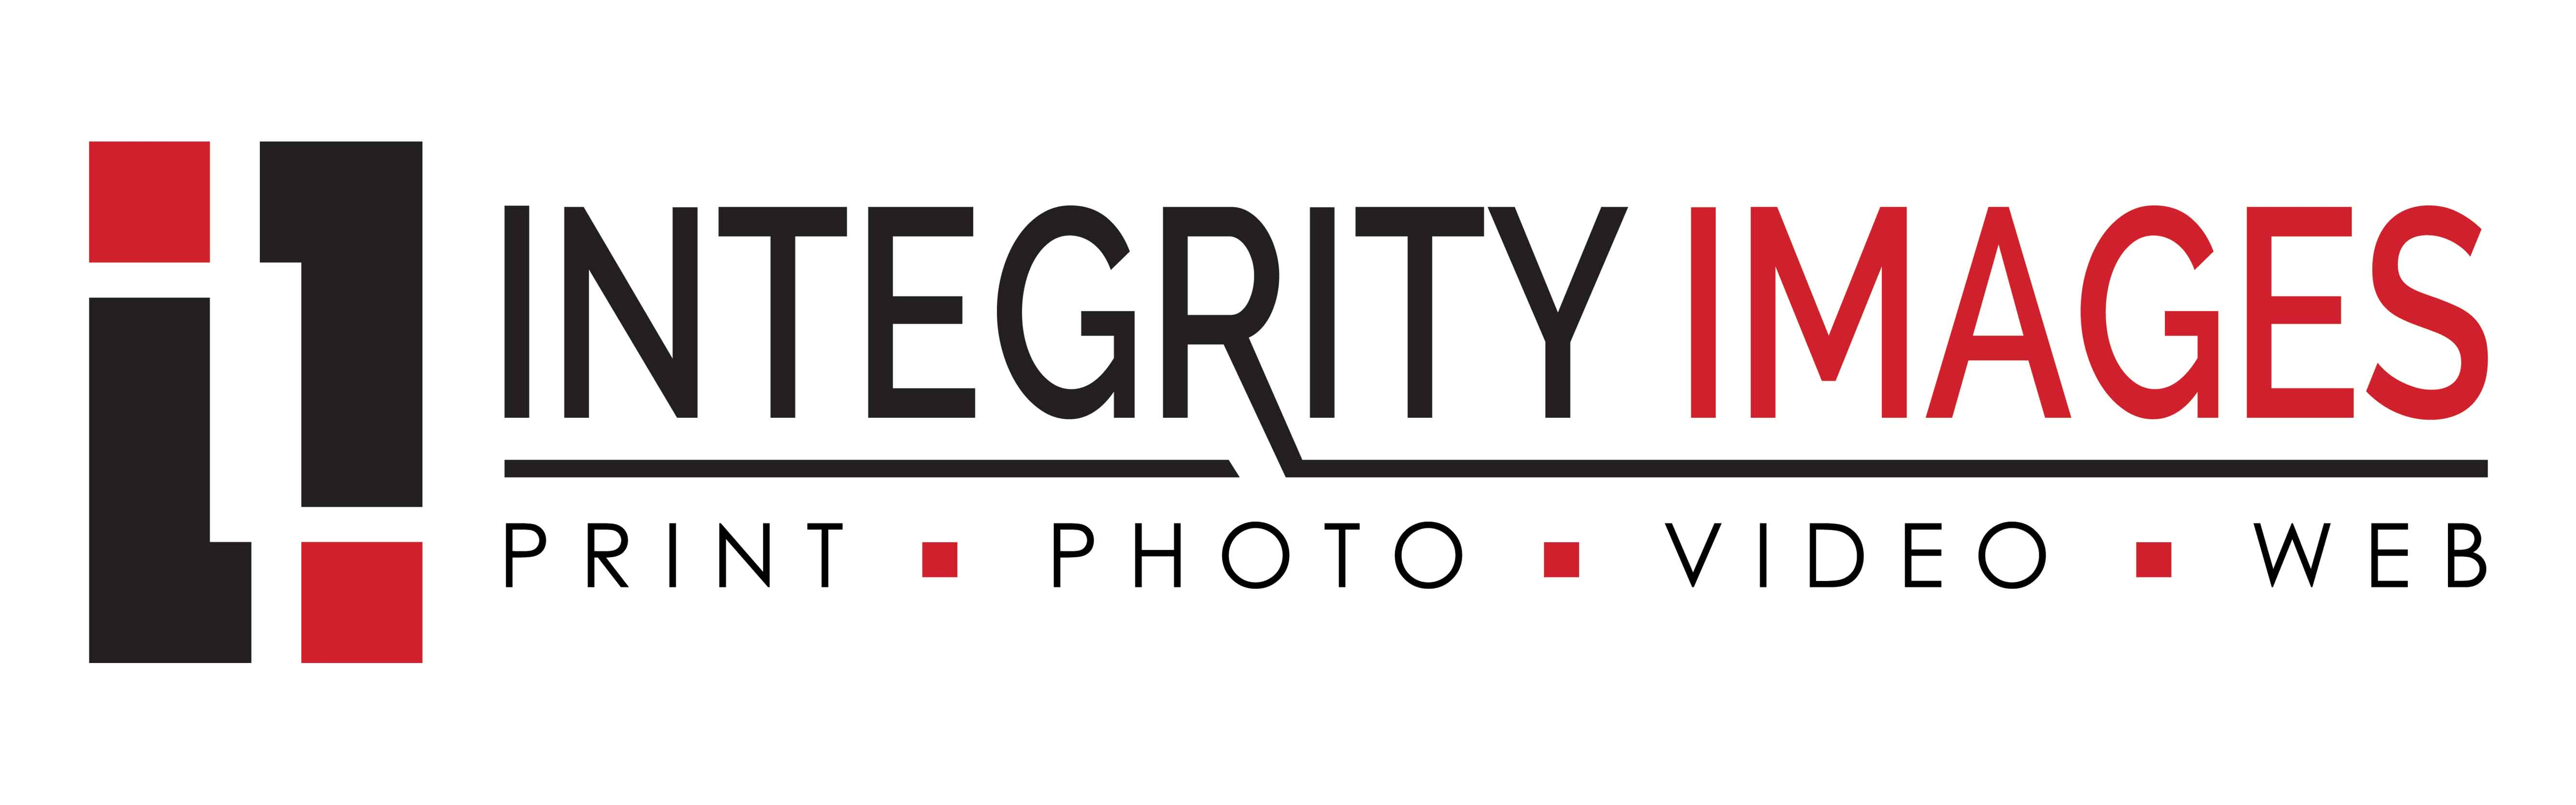 Integrity Images Top Rated Company on 10Hostings